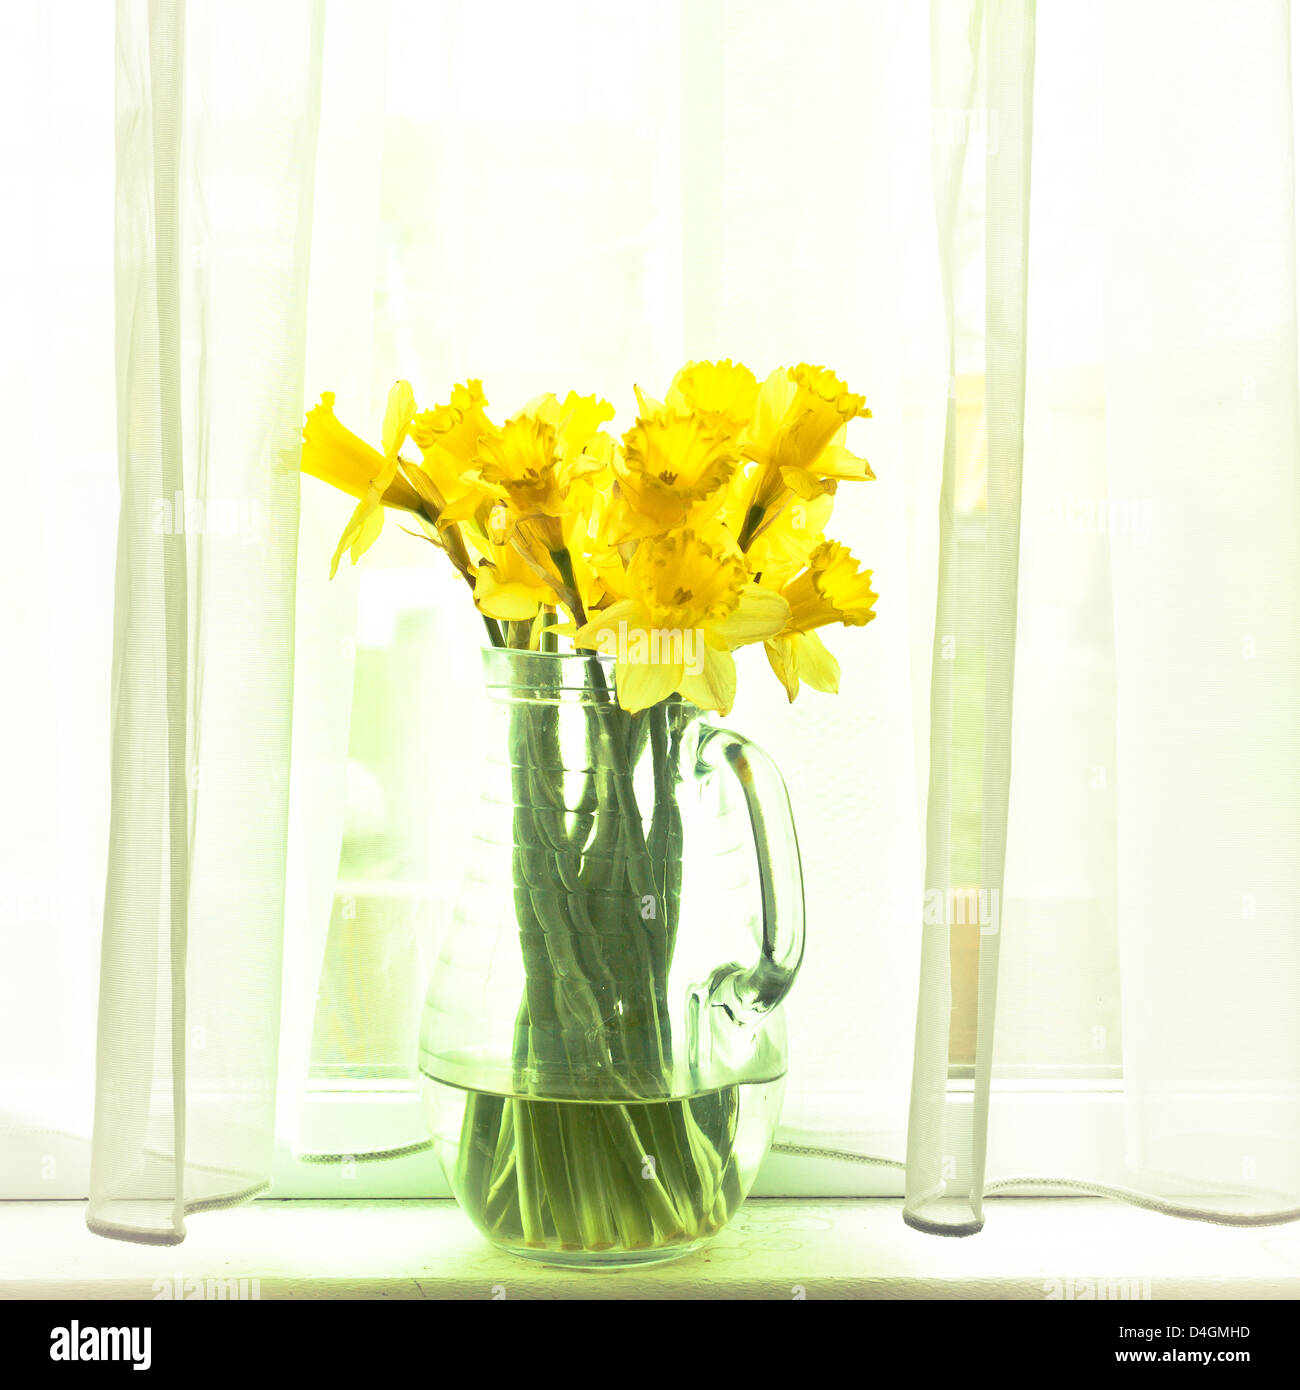 Fresh spirng daffodils in a glass jug in subtle vintage tones - Stock Image